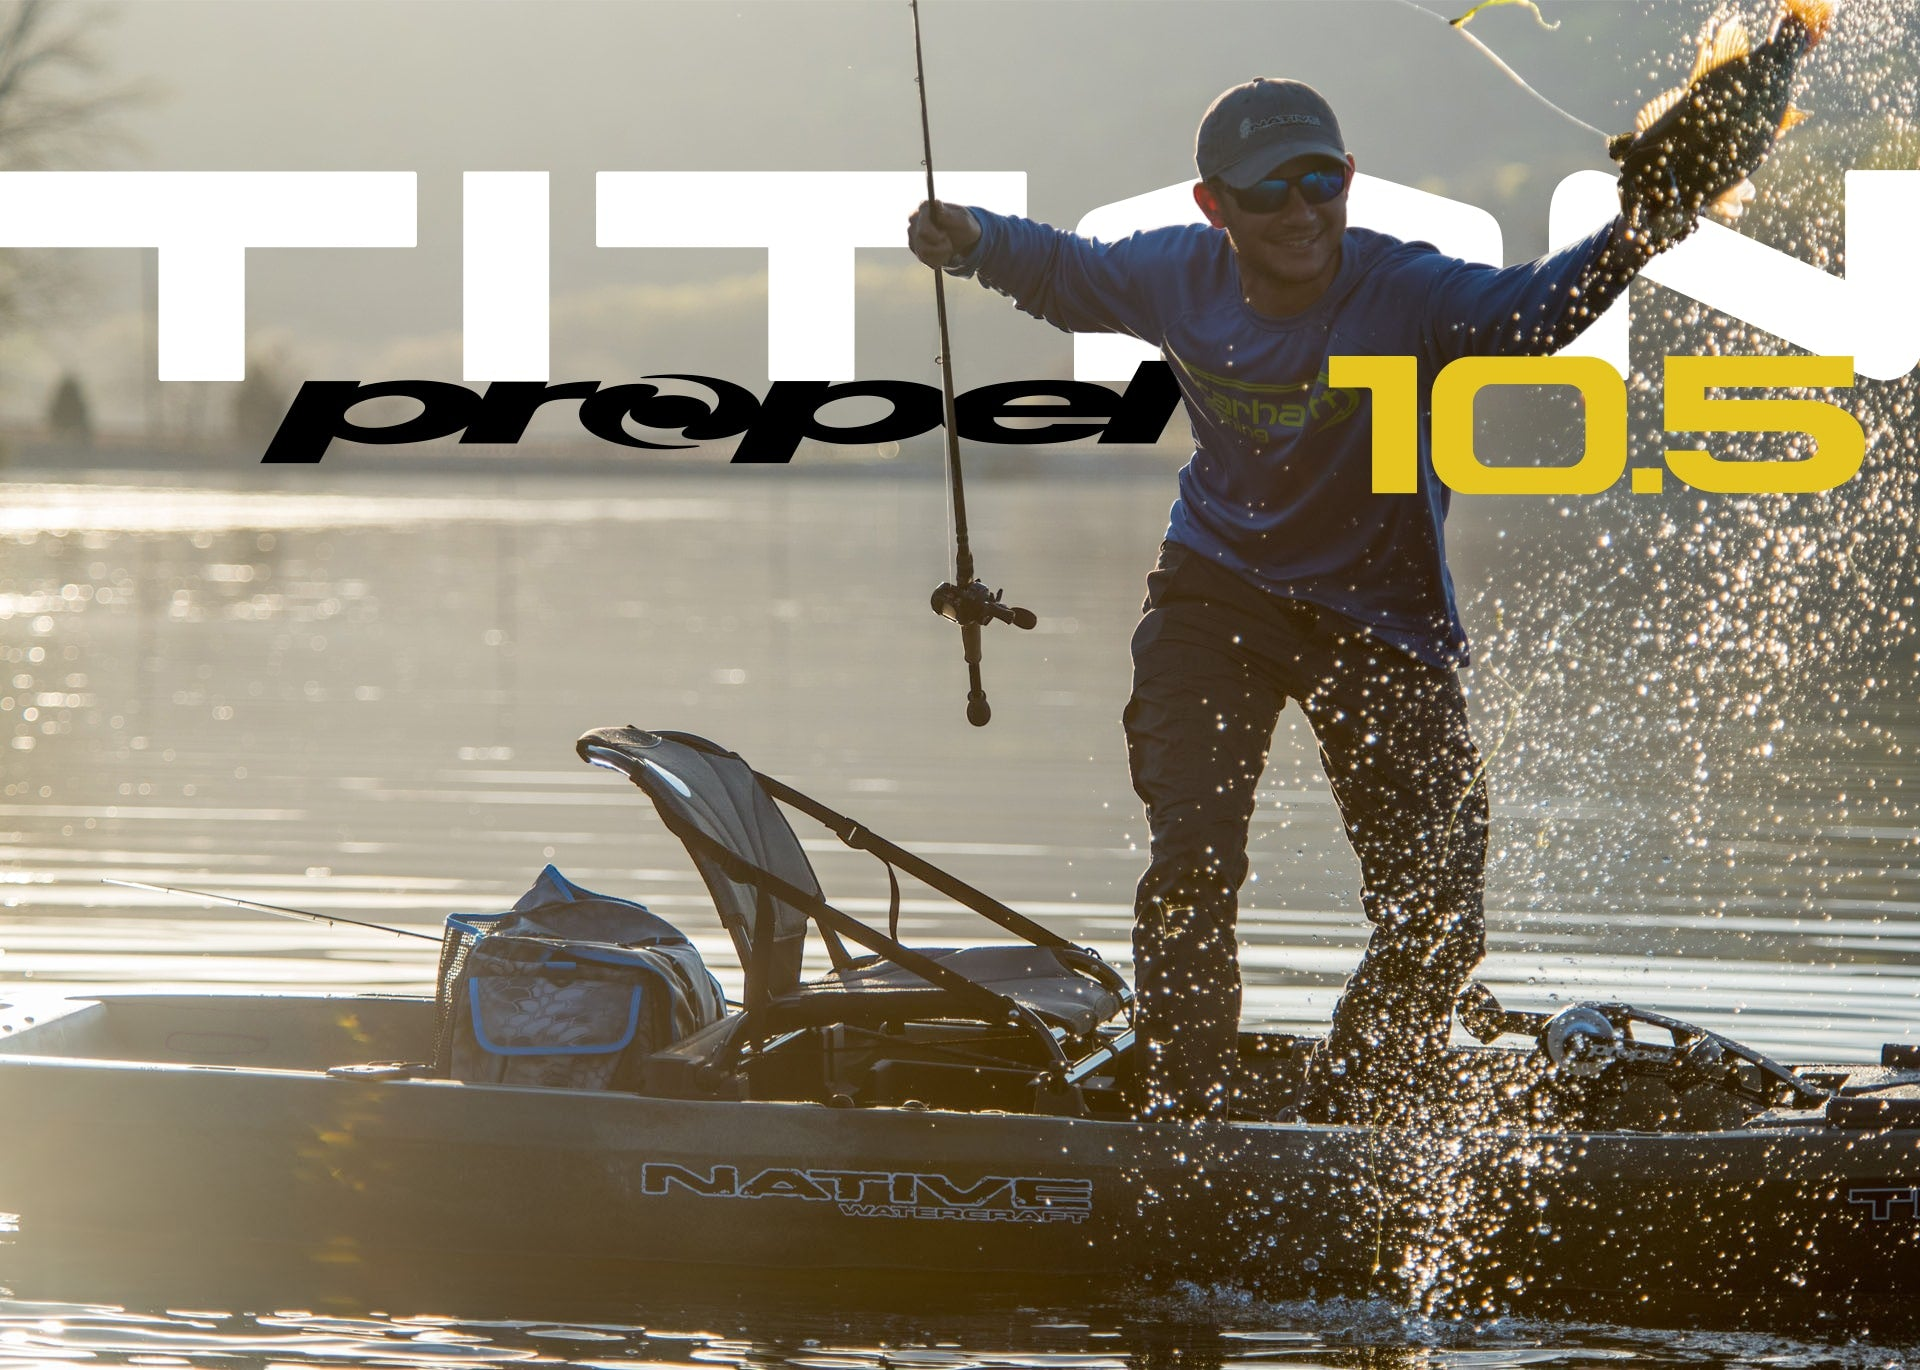 Angler catching a fish on his Native Watercraft Titan Propel 10.5